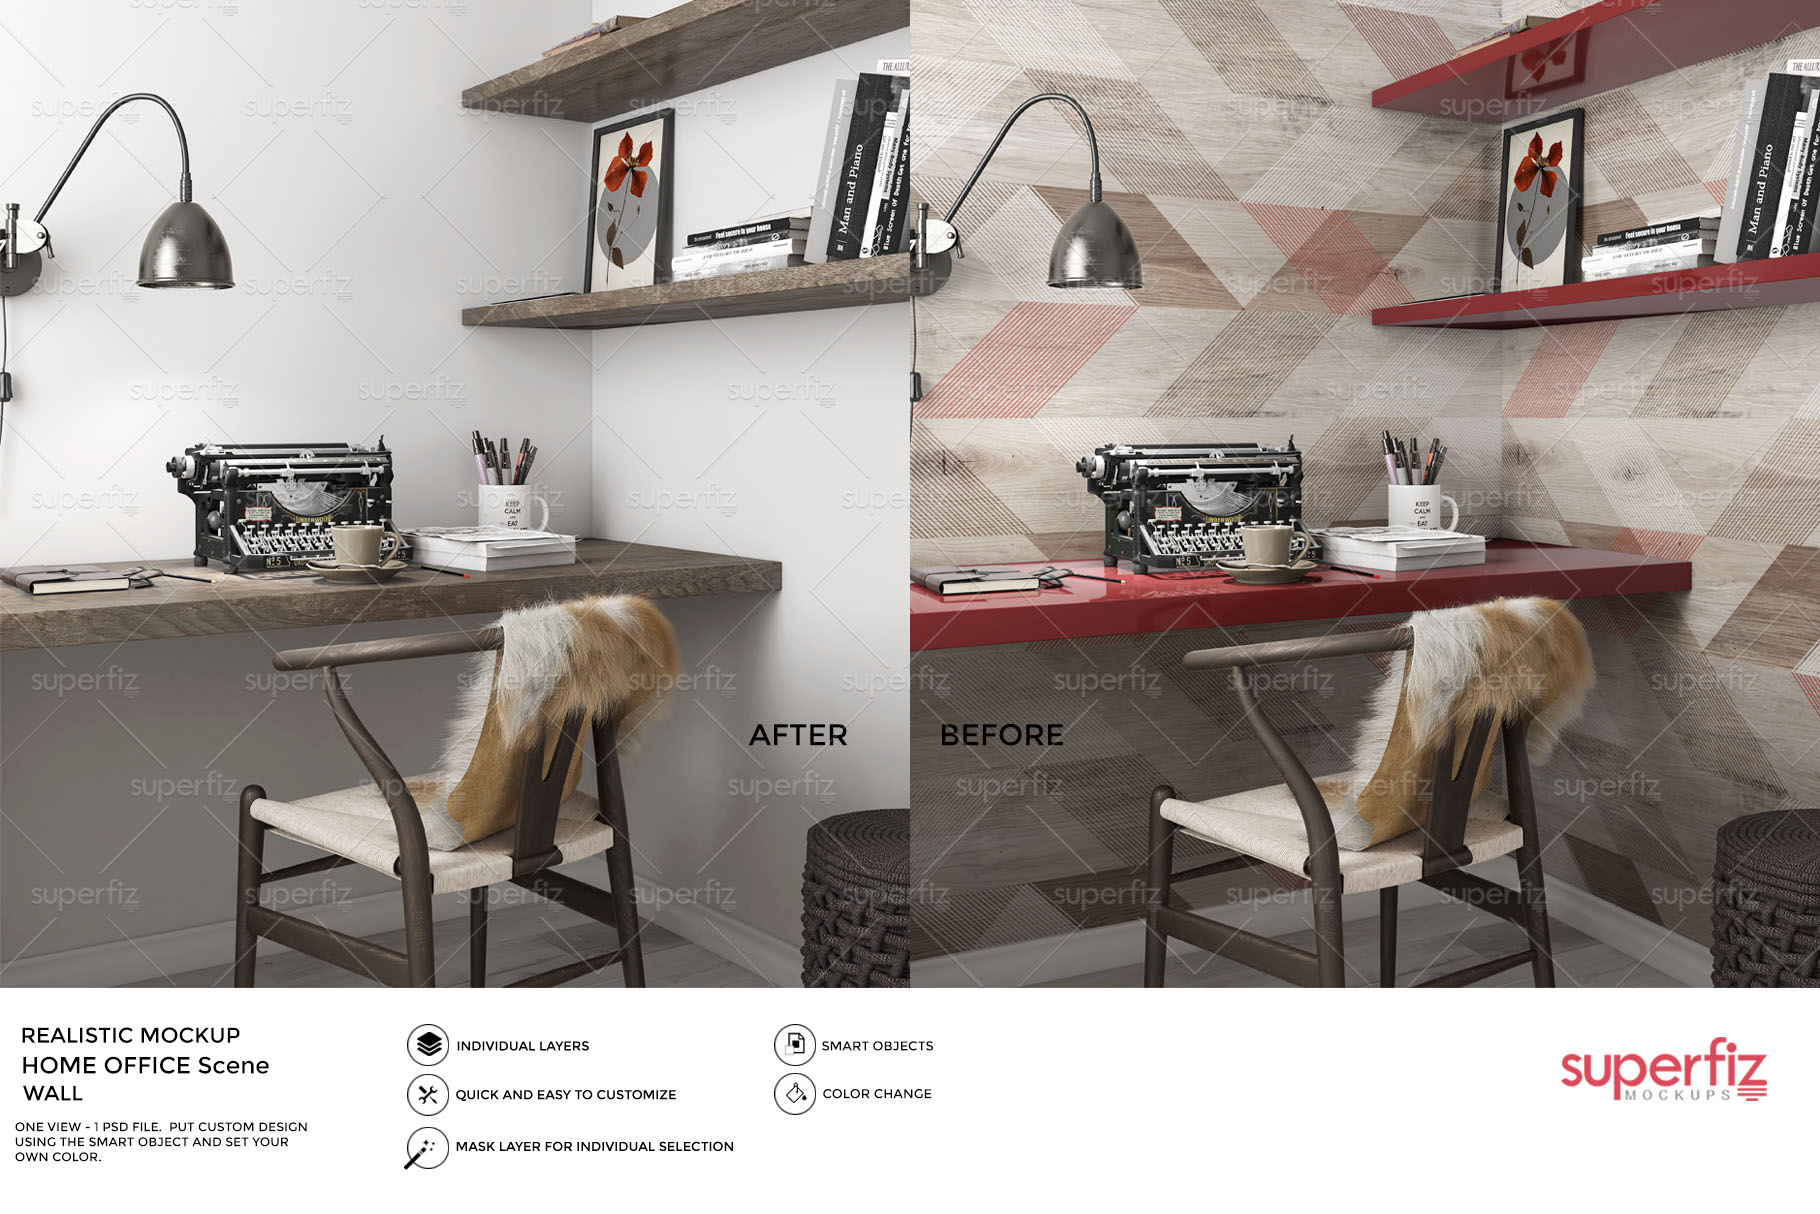 Blank Wall Mockup Home Office SM74 example image 2